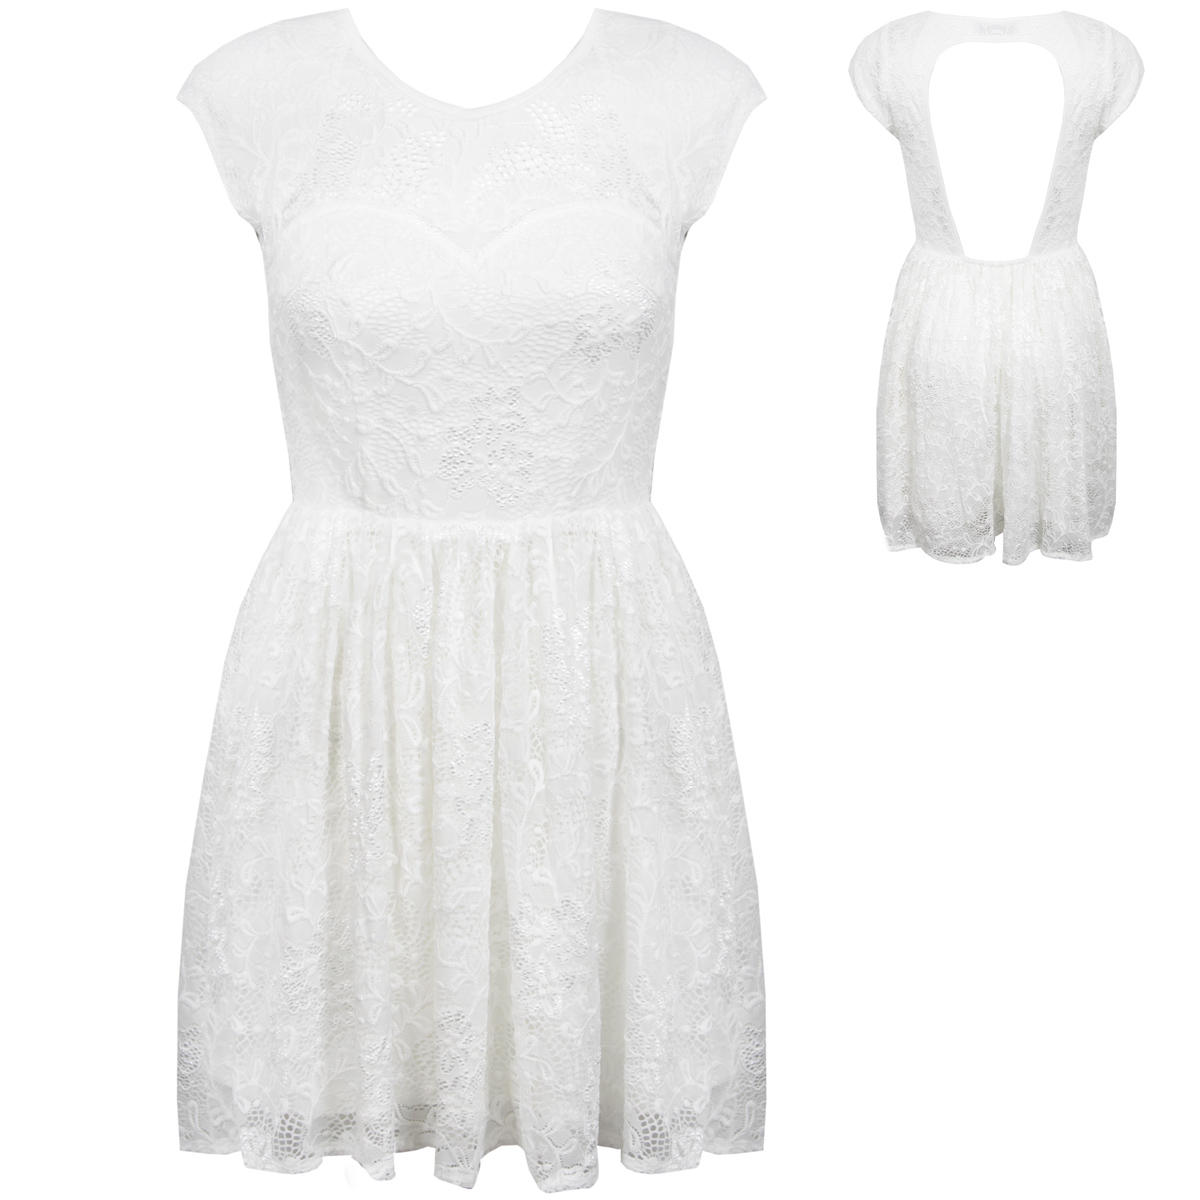 White Floral Lace Dress Preview